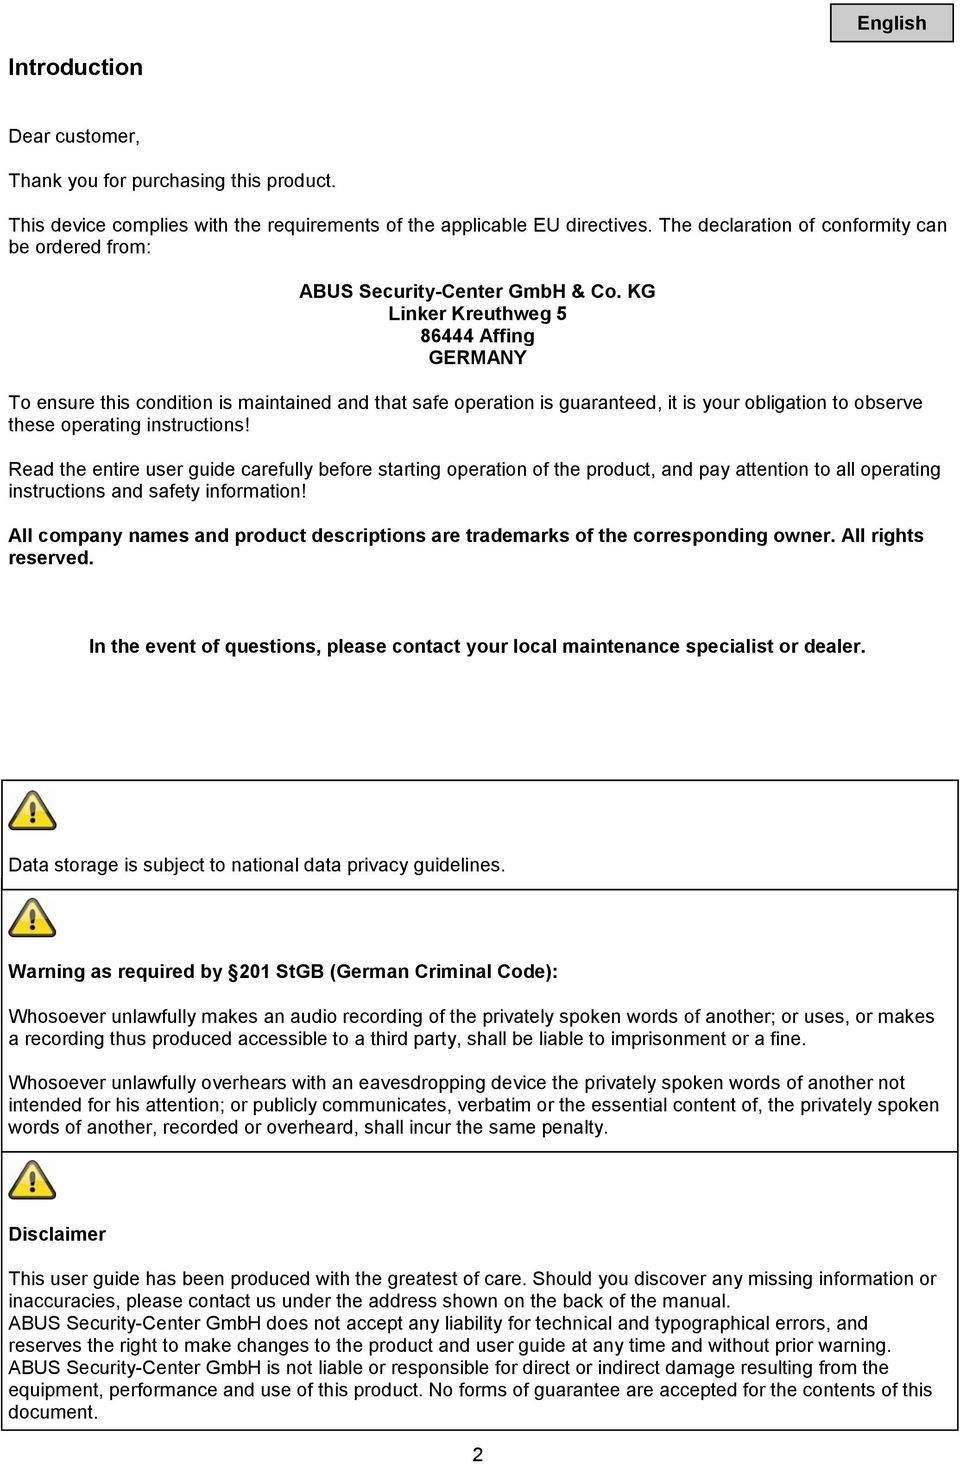 KG Linker Kreuthweg 5 86444 Affing GERMANY To ensure this condition is maintained and that safe operation is guaranteed, it is your obligation to observe these operating instructions!